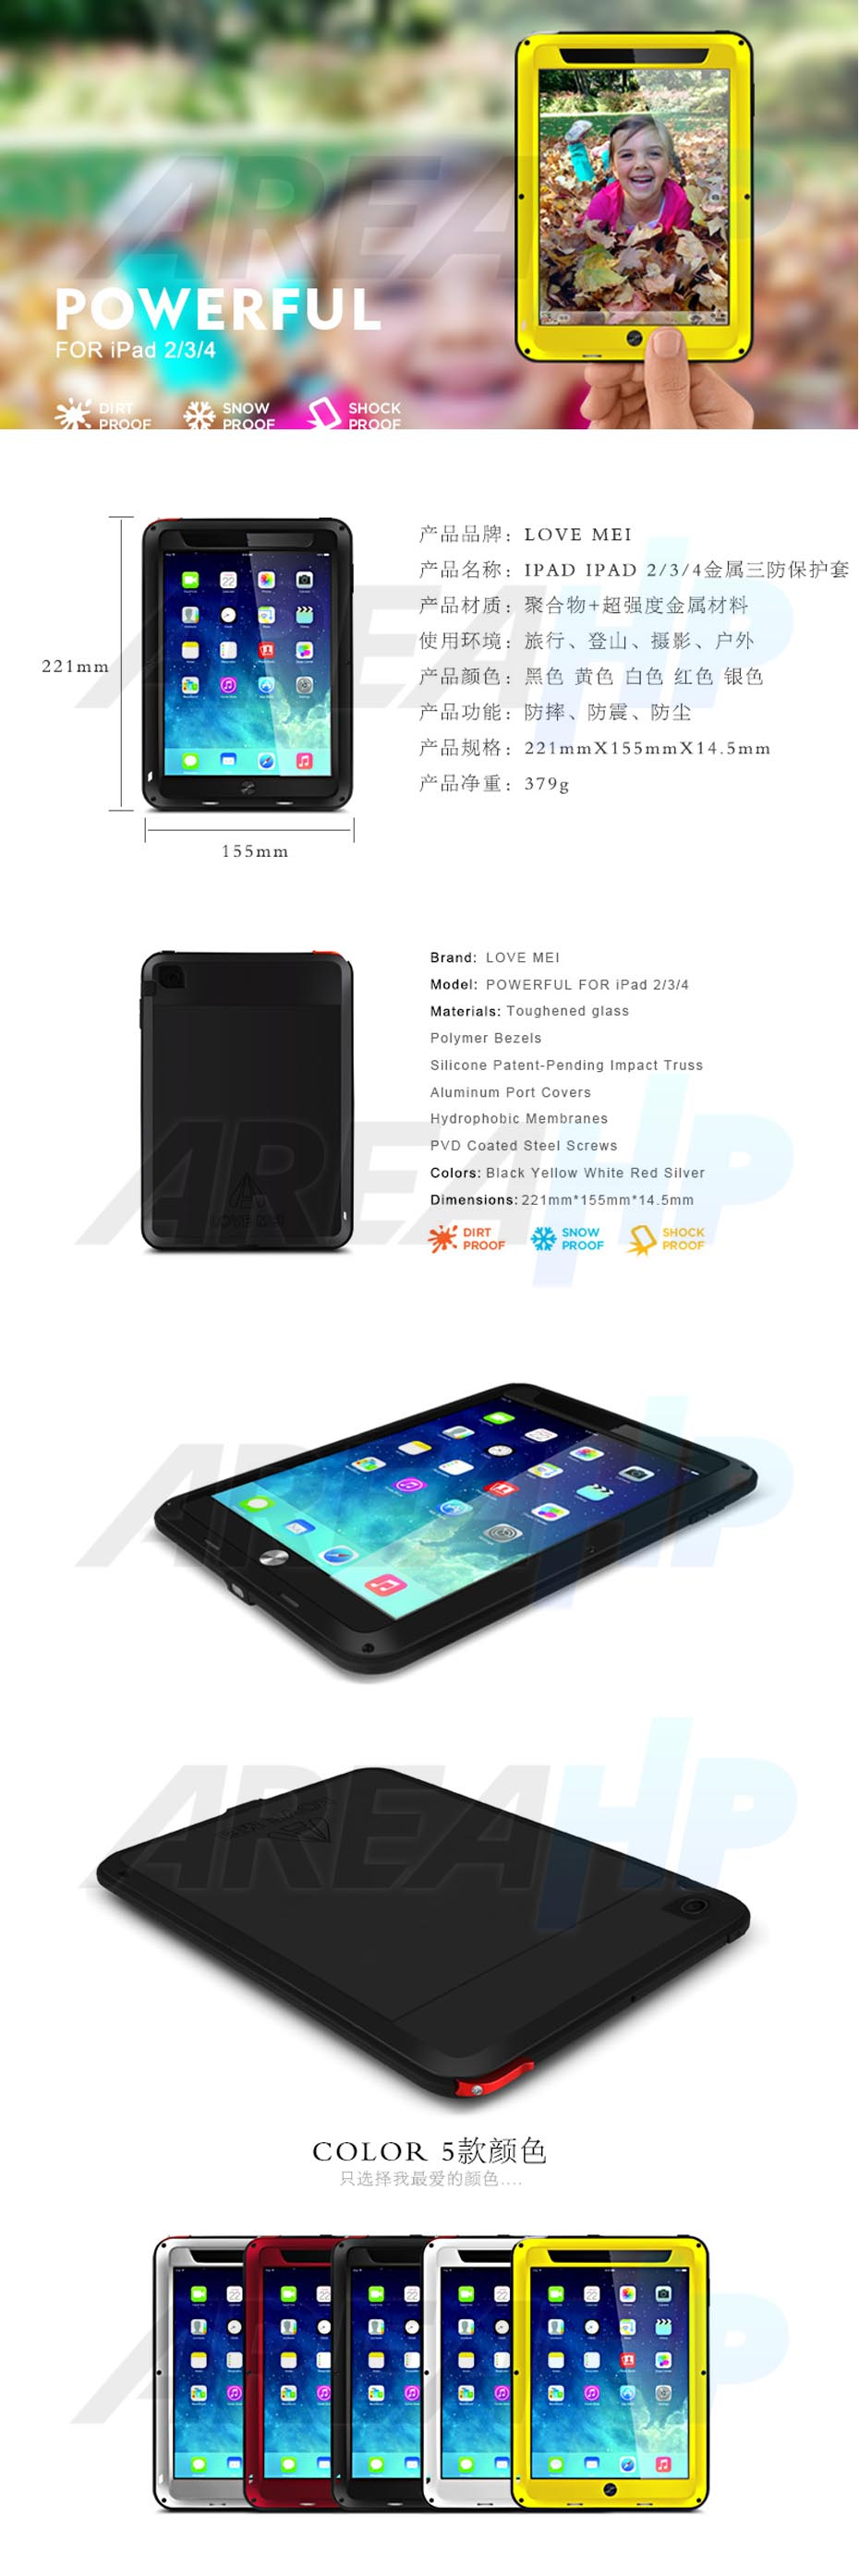 Love Mei Powerful Case for iPad 2, 3, 4 Overview